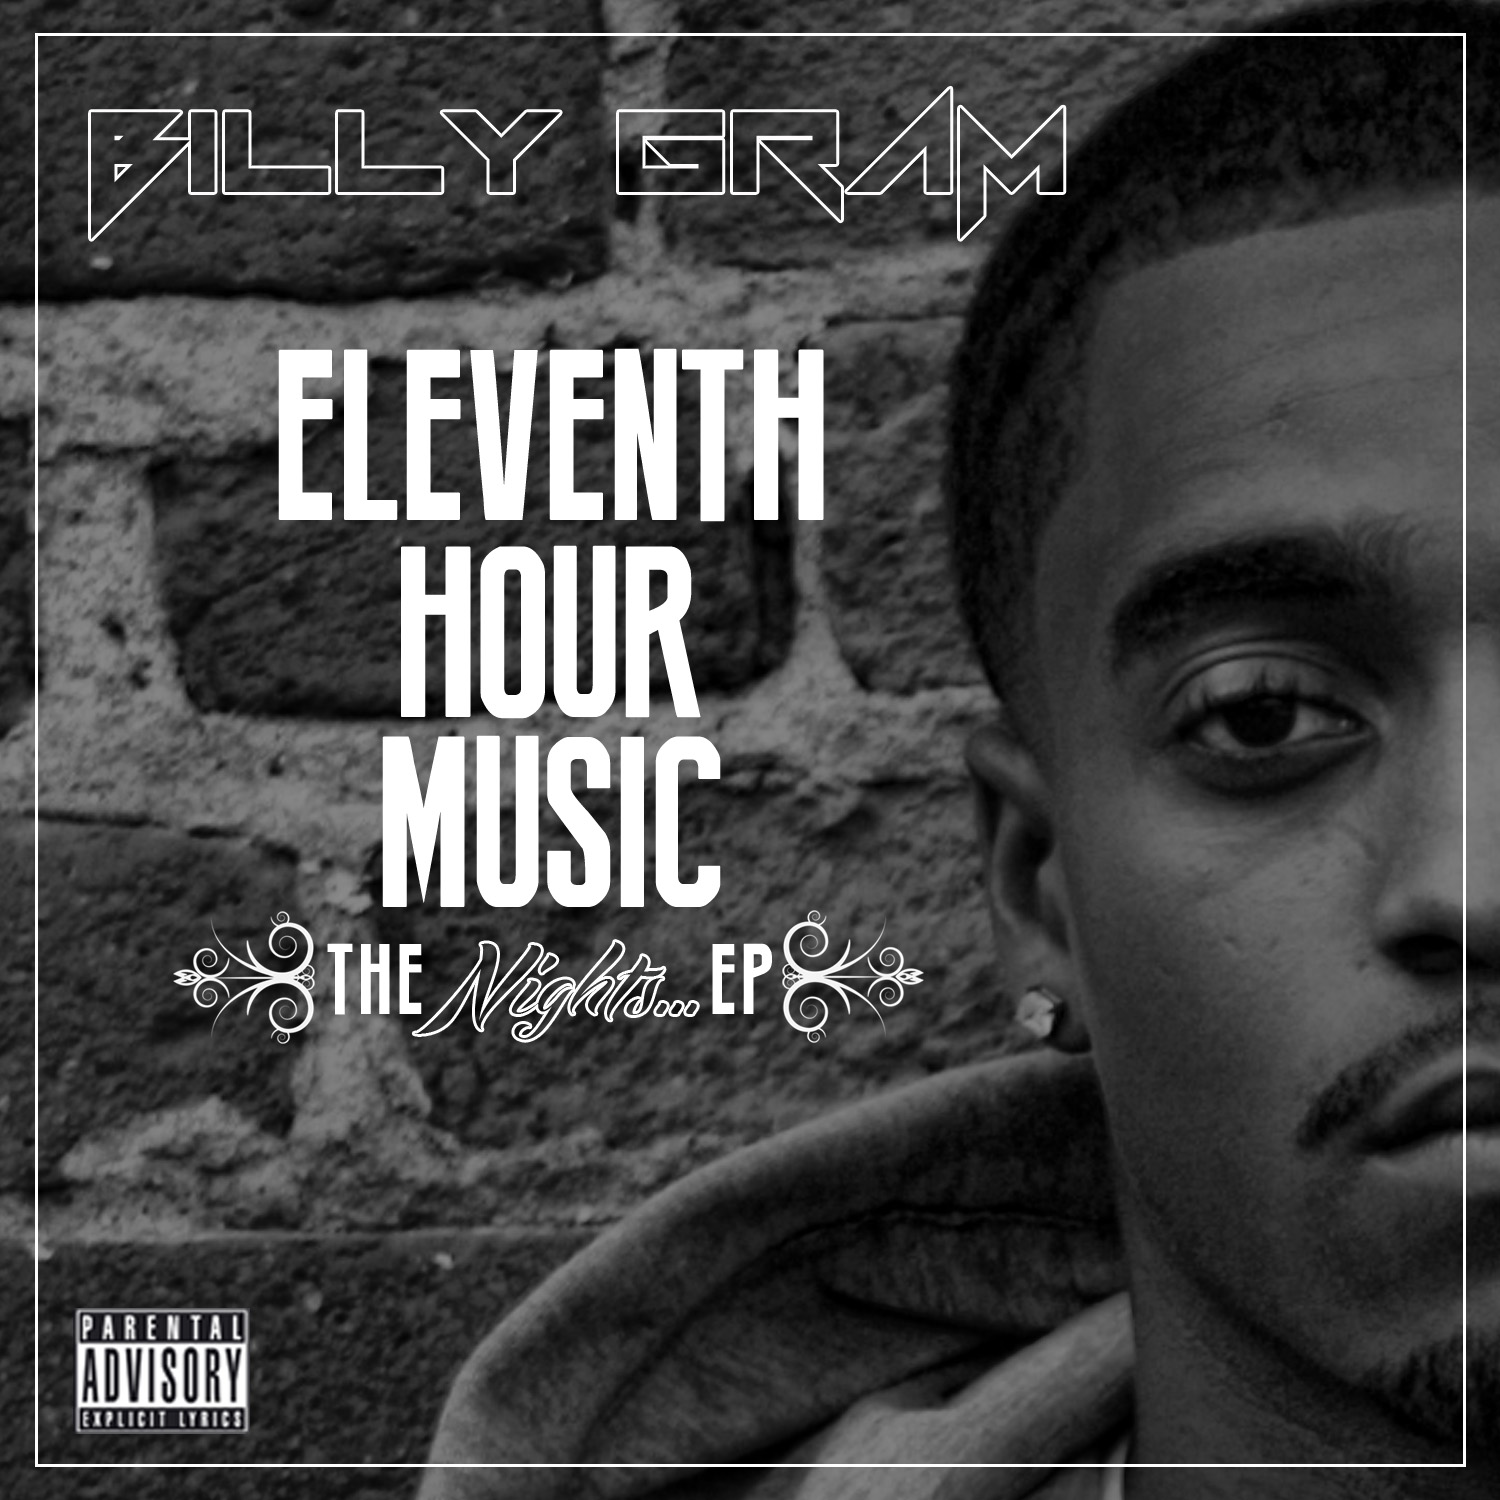 Billy GRAM – Eleventh Hour Music: The Nights…[EP]